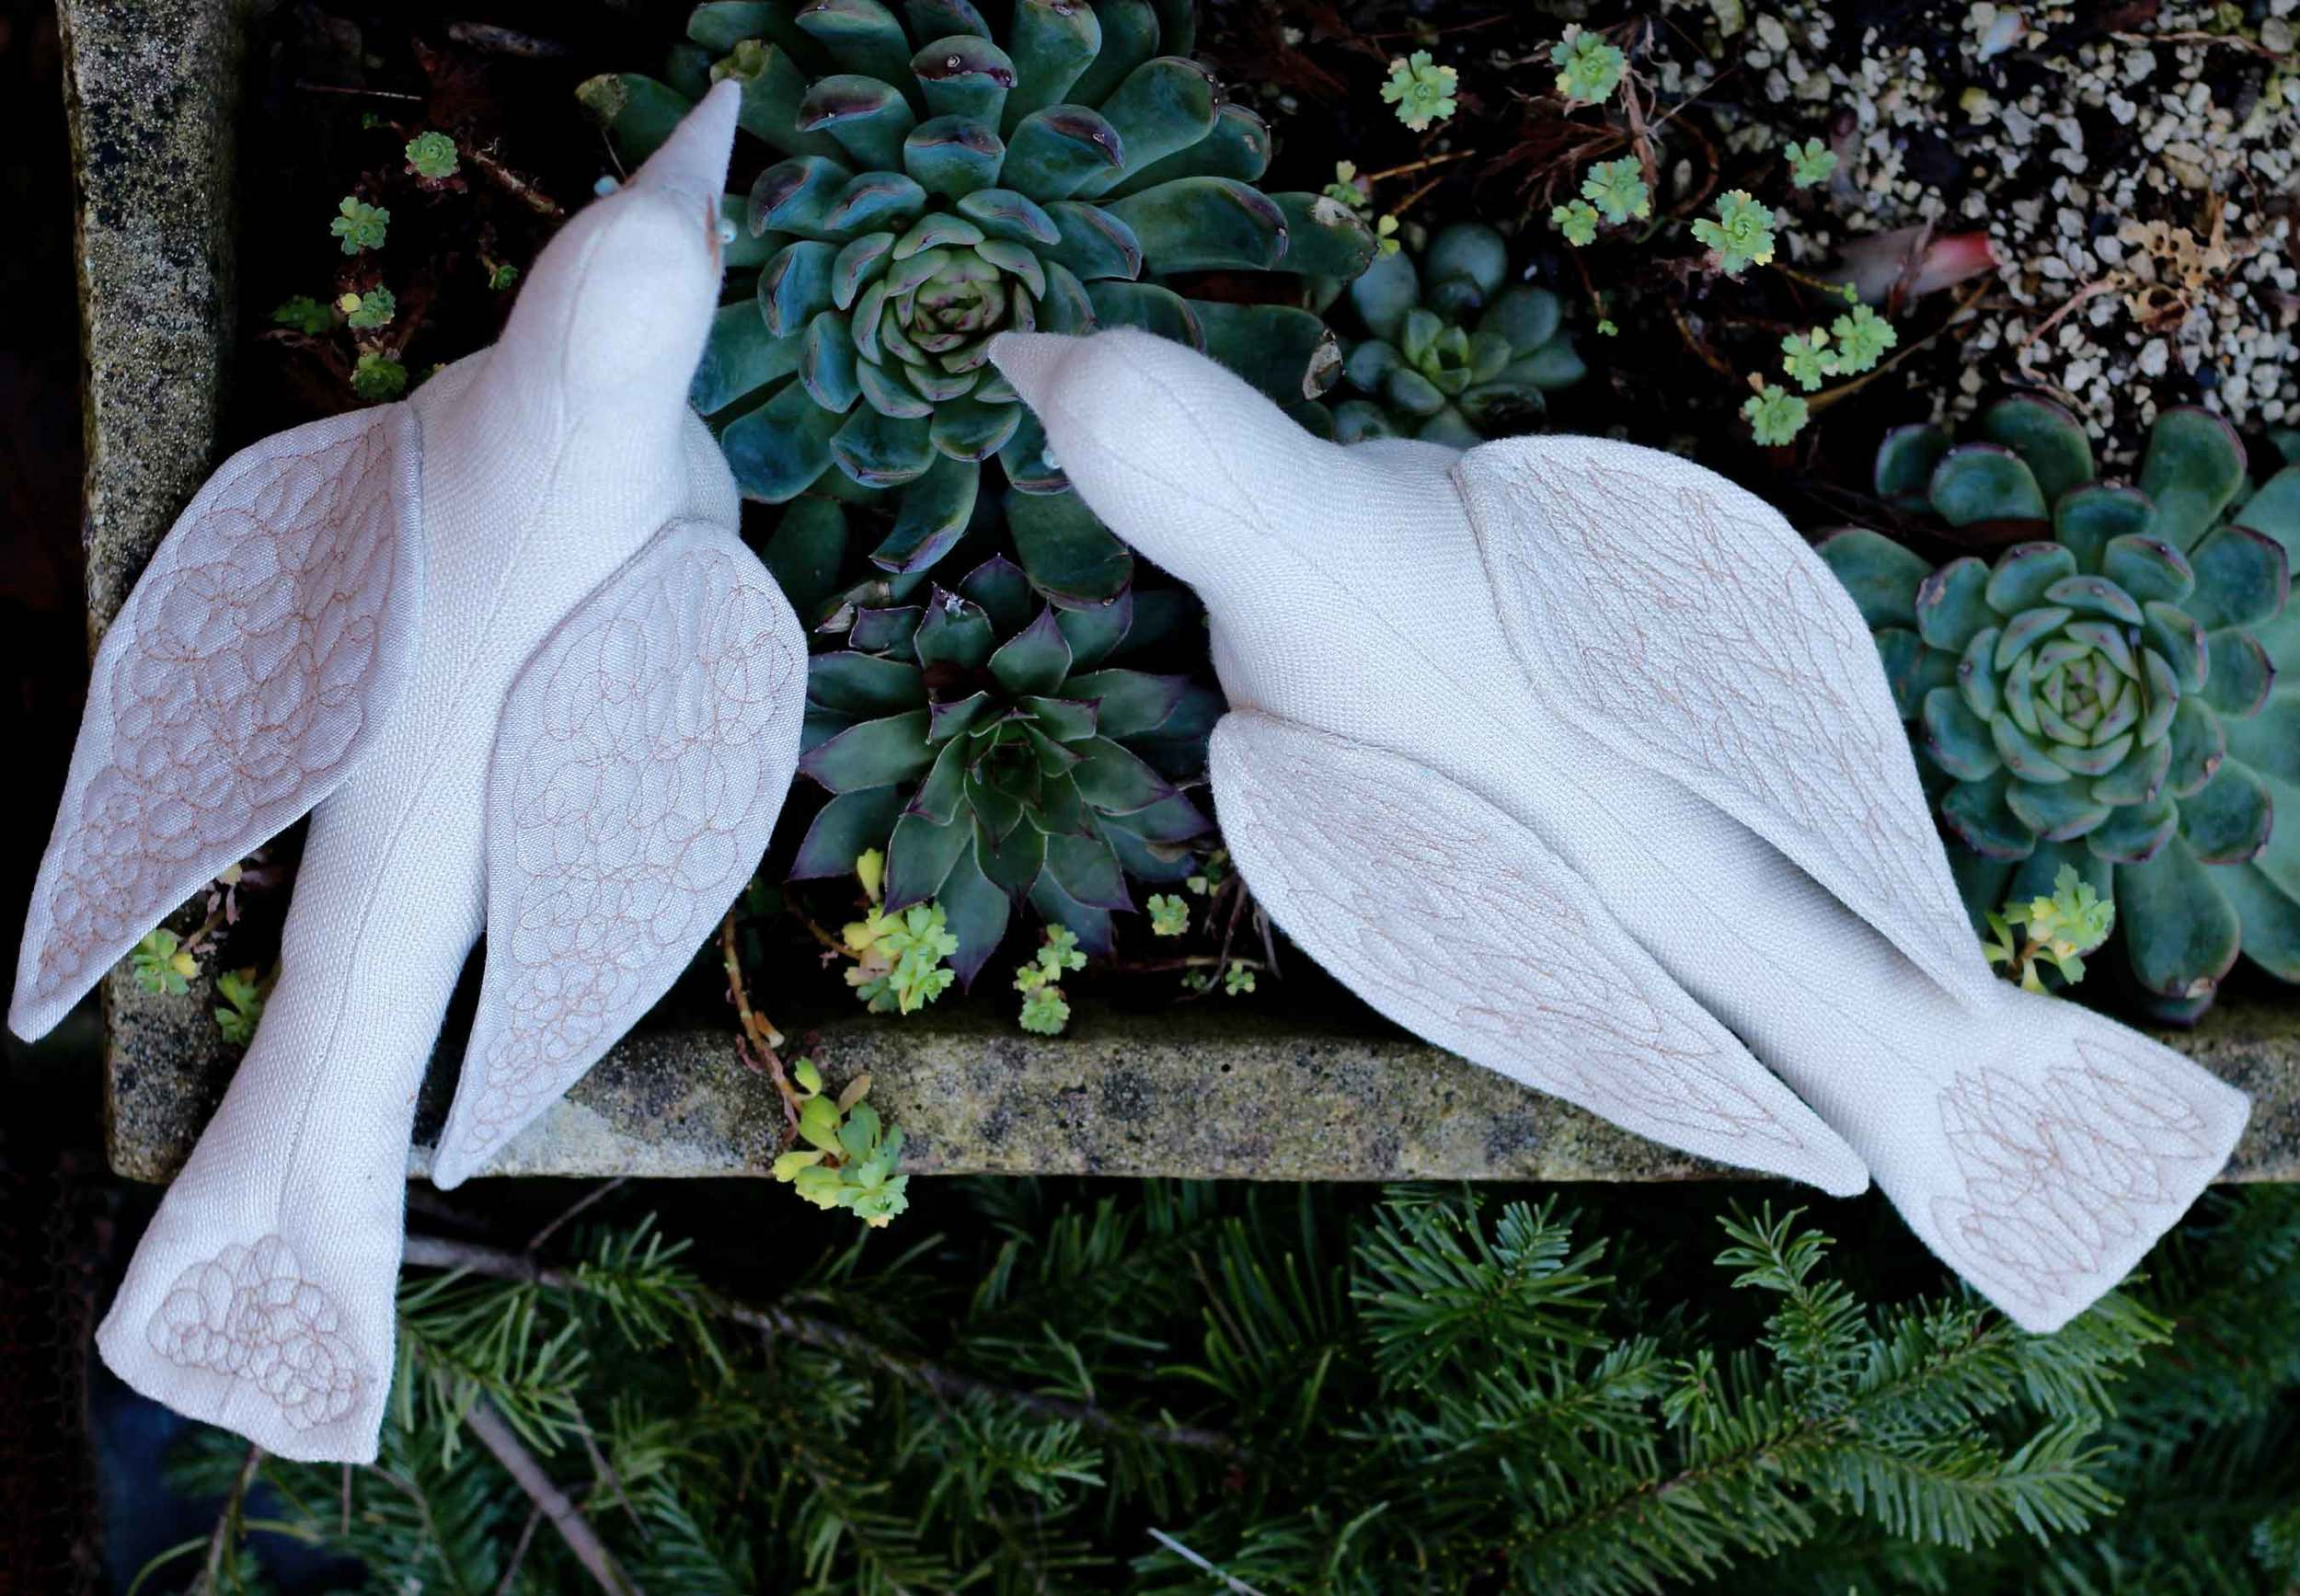 handmade sewn dove, peace dove, design by Thread & Whisk, doves chatting over succulents